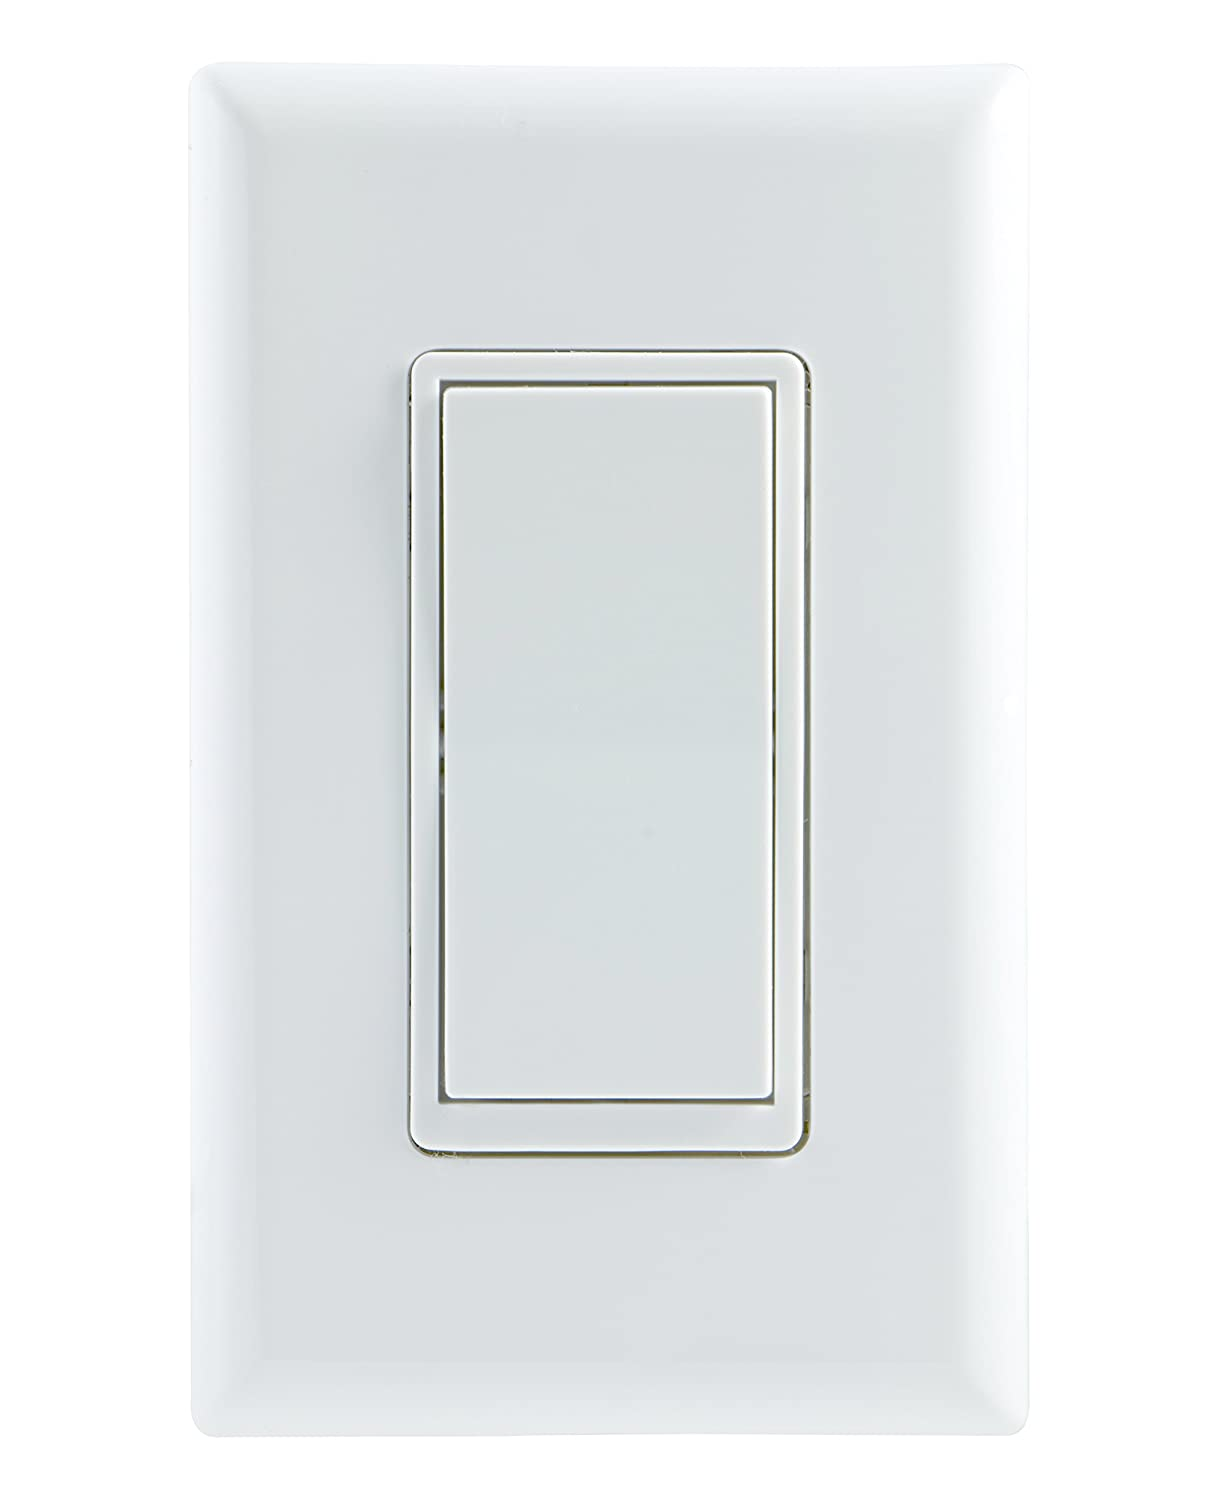 Ge Add On Switch Only For Z Wave Zigbee And Bluetooth Way Wireless Smart Lighting Controls Not A Standalone Incl White Light Almond